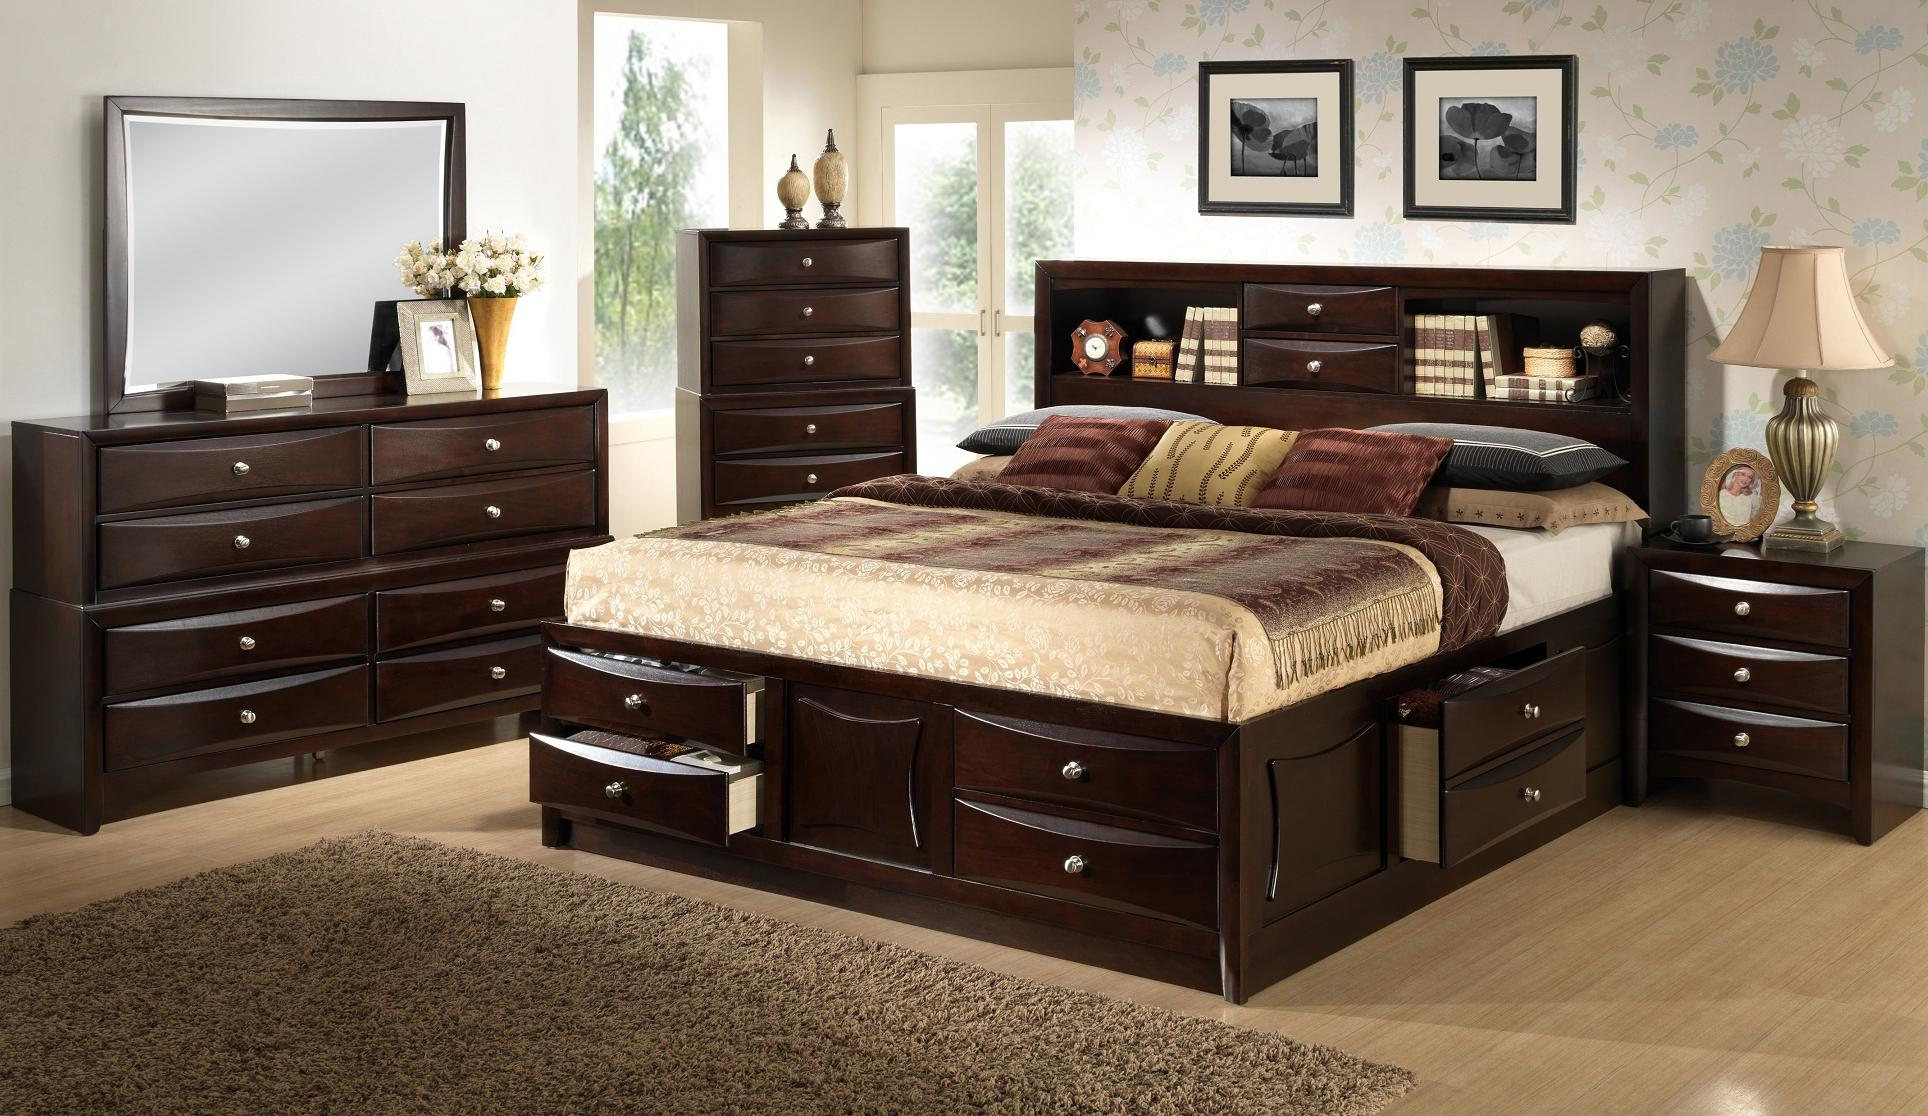 C0172 Queen Bedroom Group by Lifestyle at Beck's Furniture